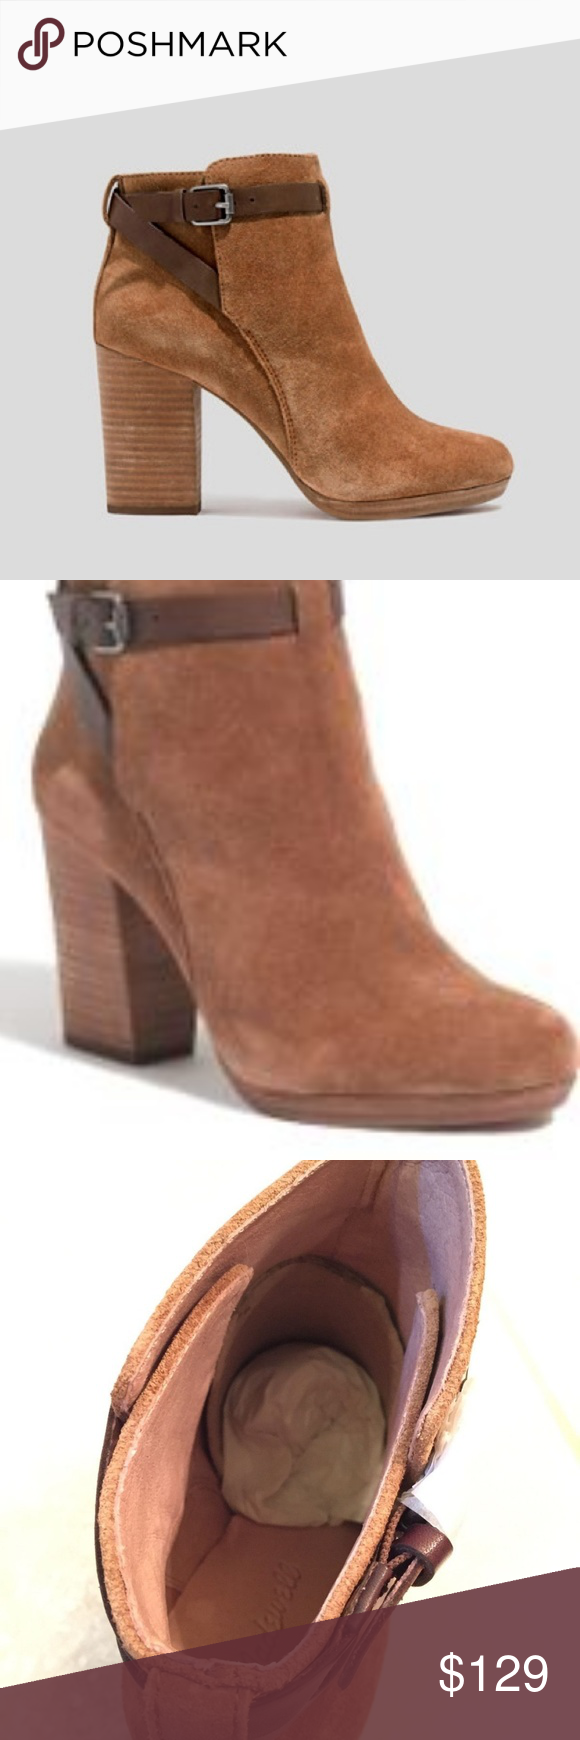 fe5fb39d846 Madewell Suede Heeled Ankle Boots Sz 11 NWB NWT in 2018 | My Posh ...